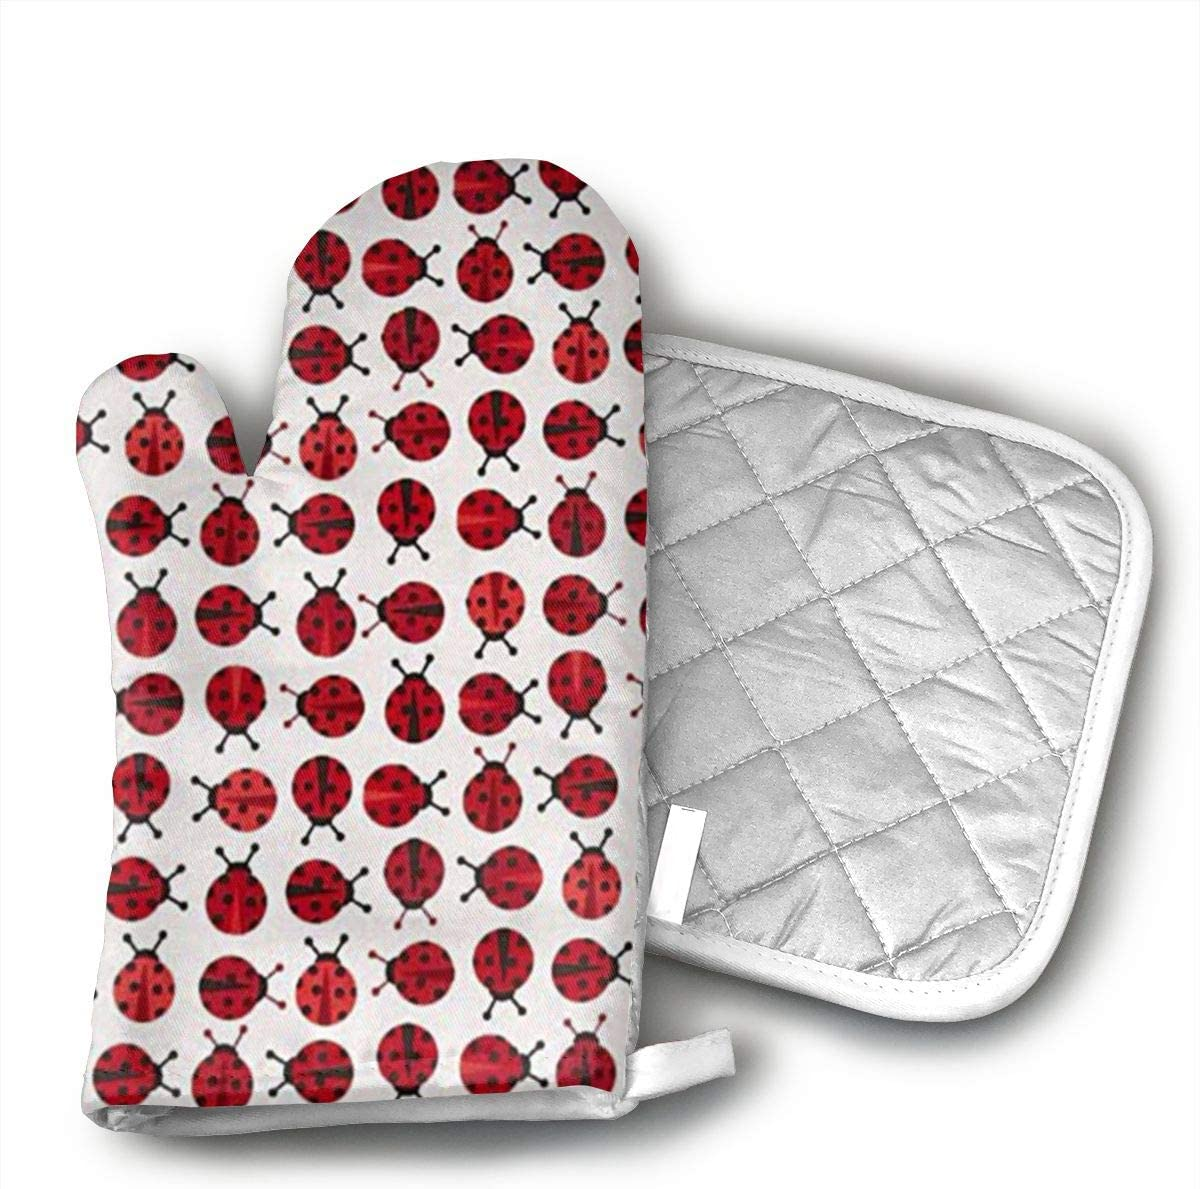 Zoologie Mini Ladybugs Red Kitchen Potholder - Heat Resistant Oven Gloves to Protect Hands and Surfaces with Non-Slip Grip,Ideal for Handling Hot Cookware Items.